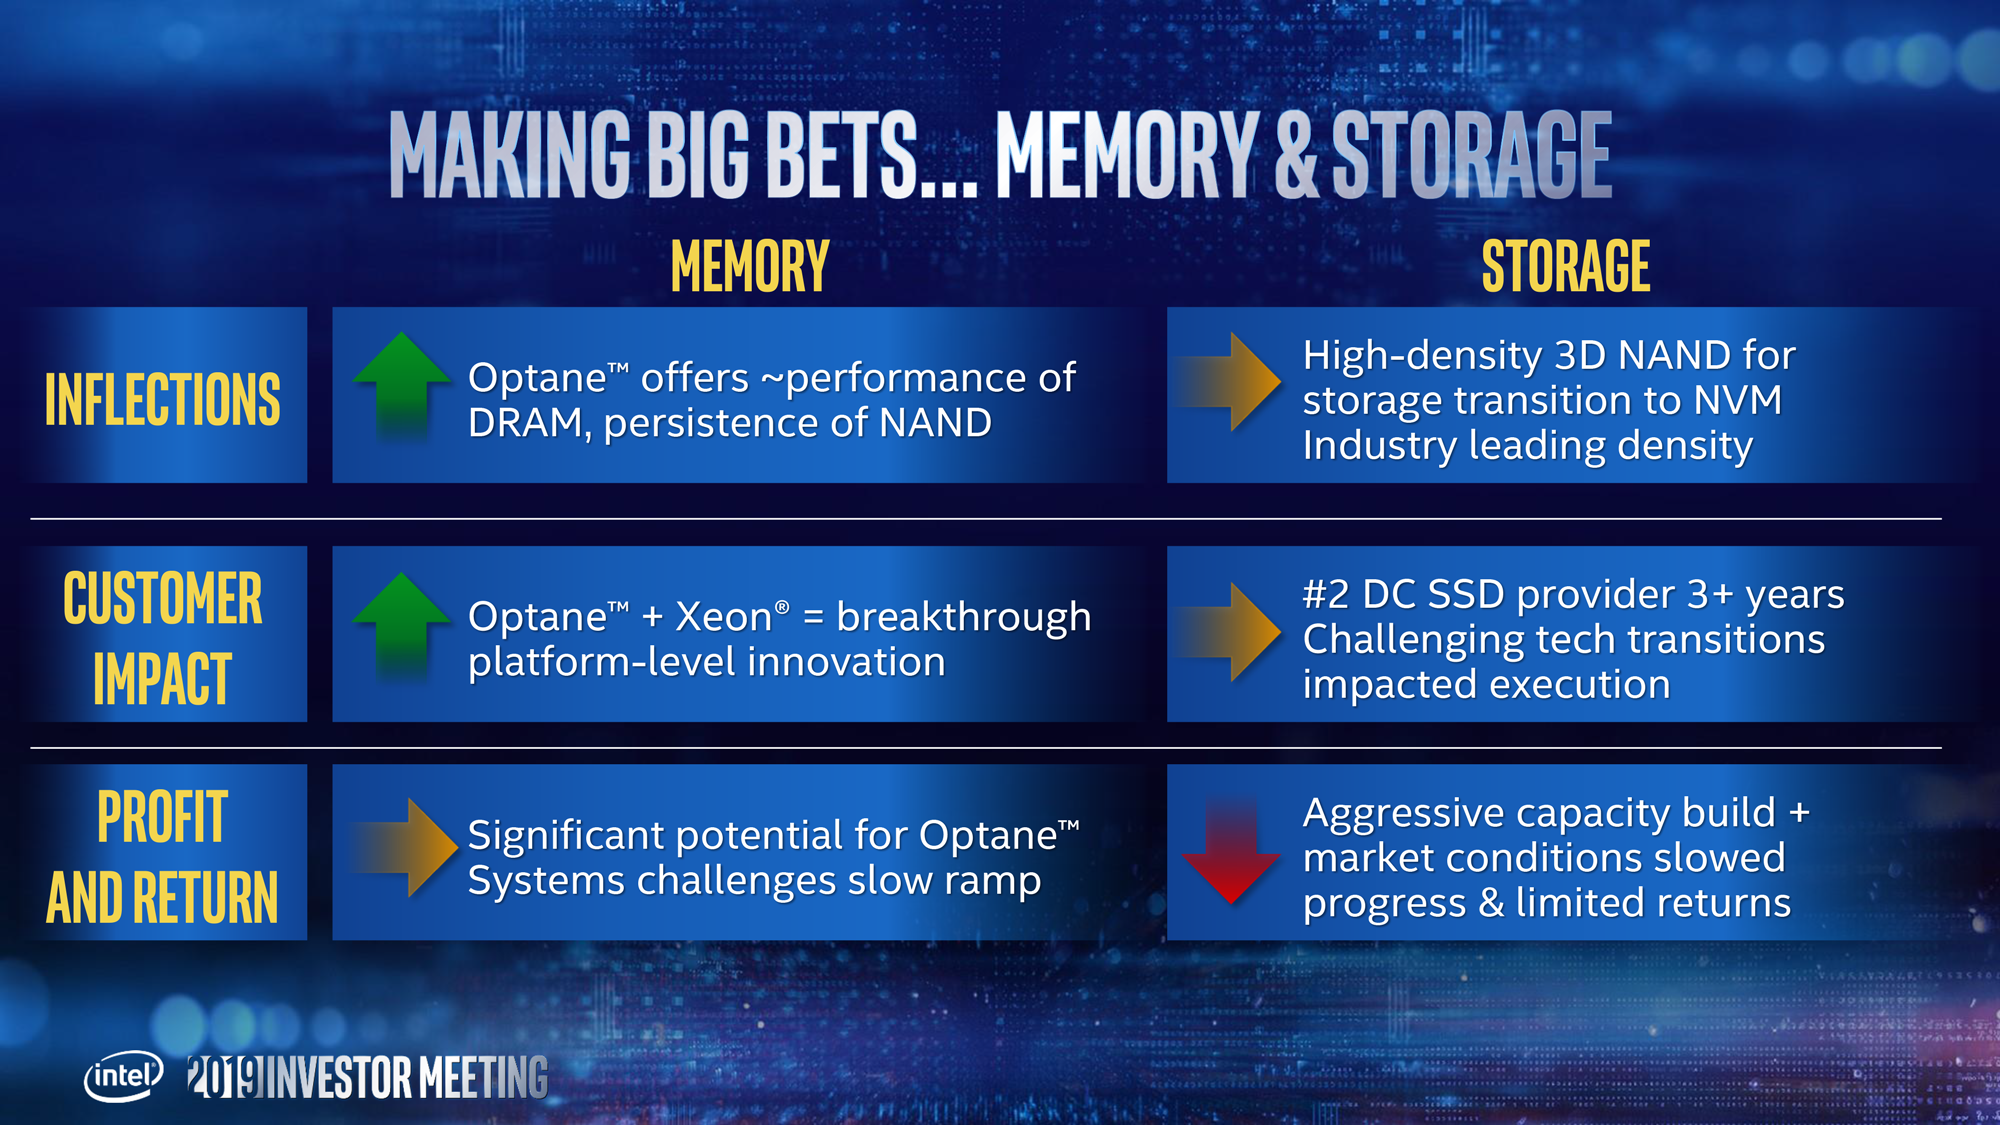 Intel Memory Plans: No New NAND Capacity, Wants to Move 3D